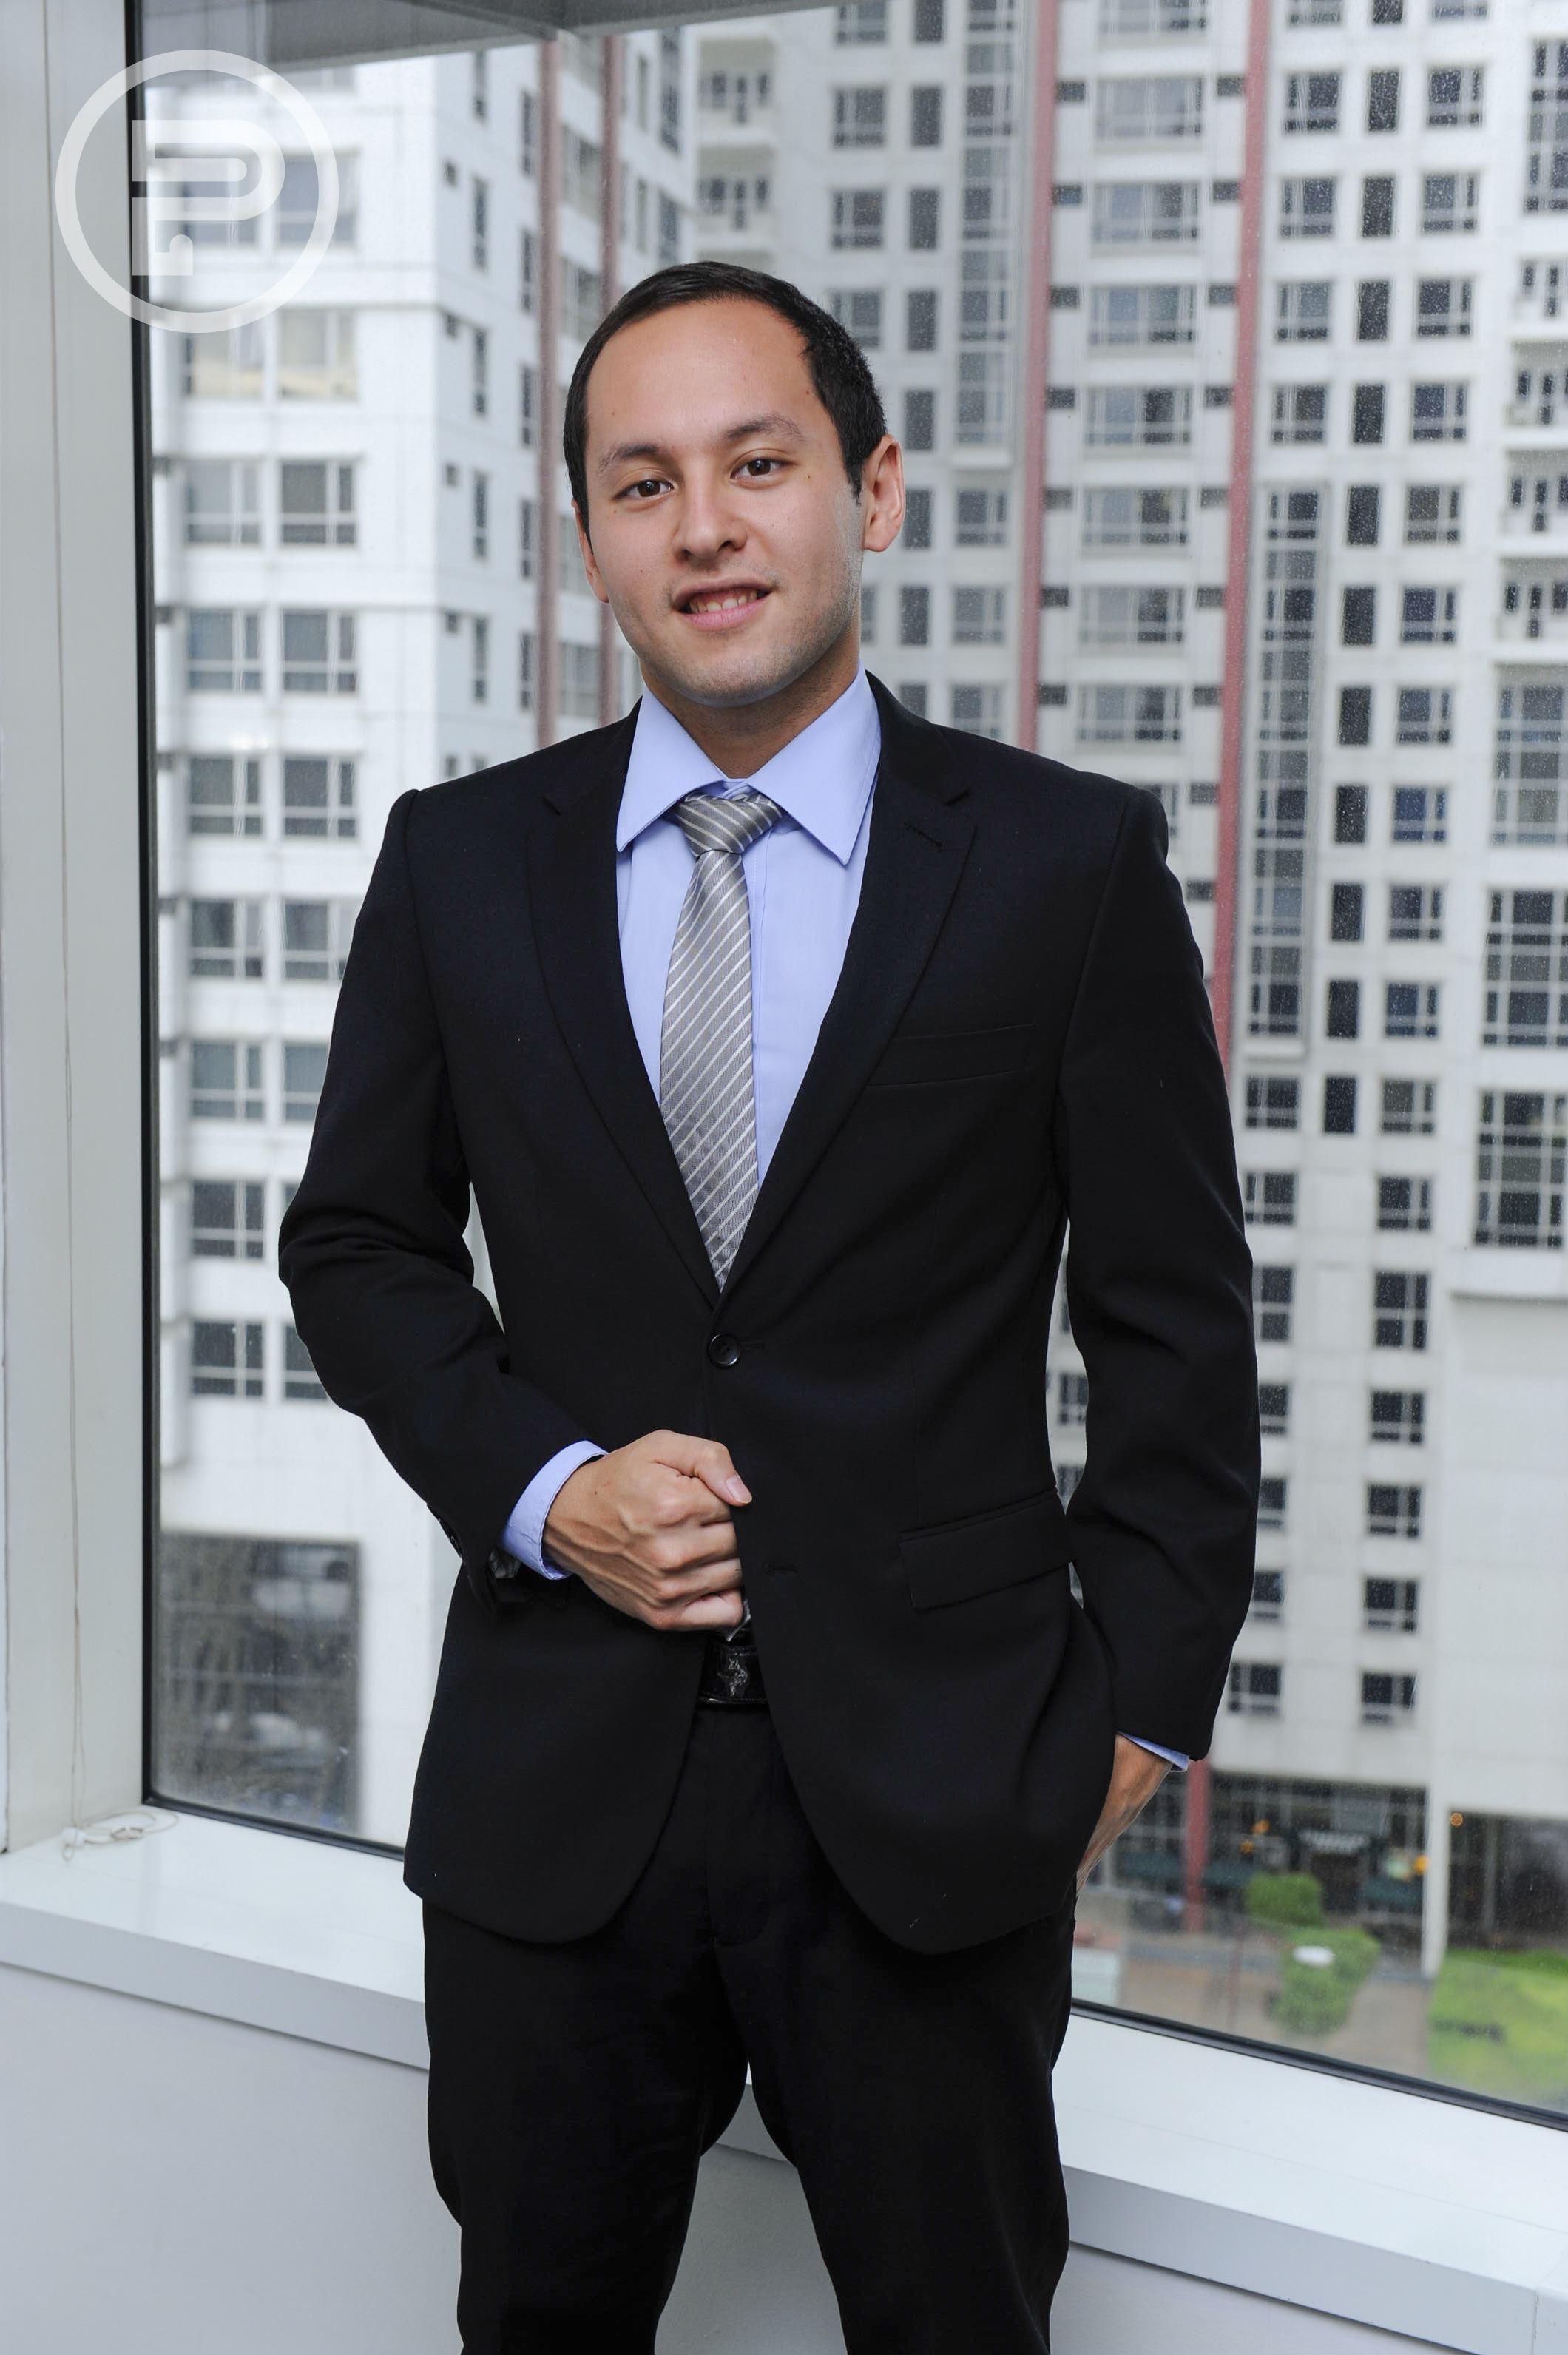 Andre Ramirez, investments expert, is Pinetree Capital's new Senior Investment Manager